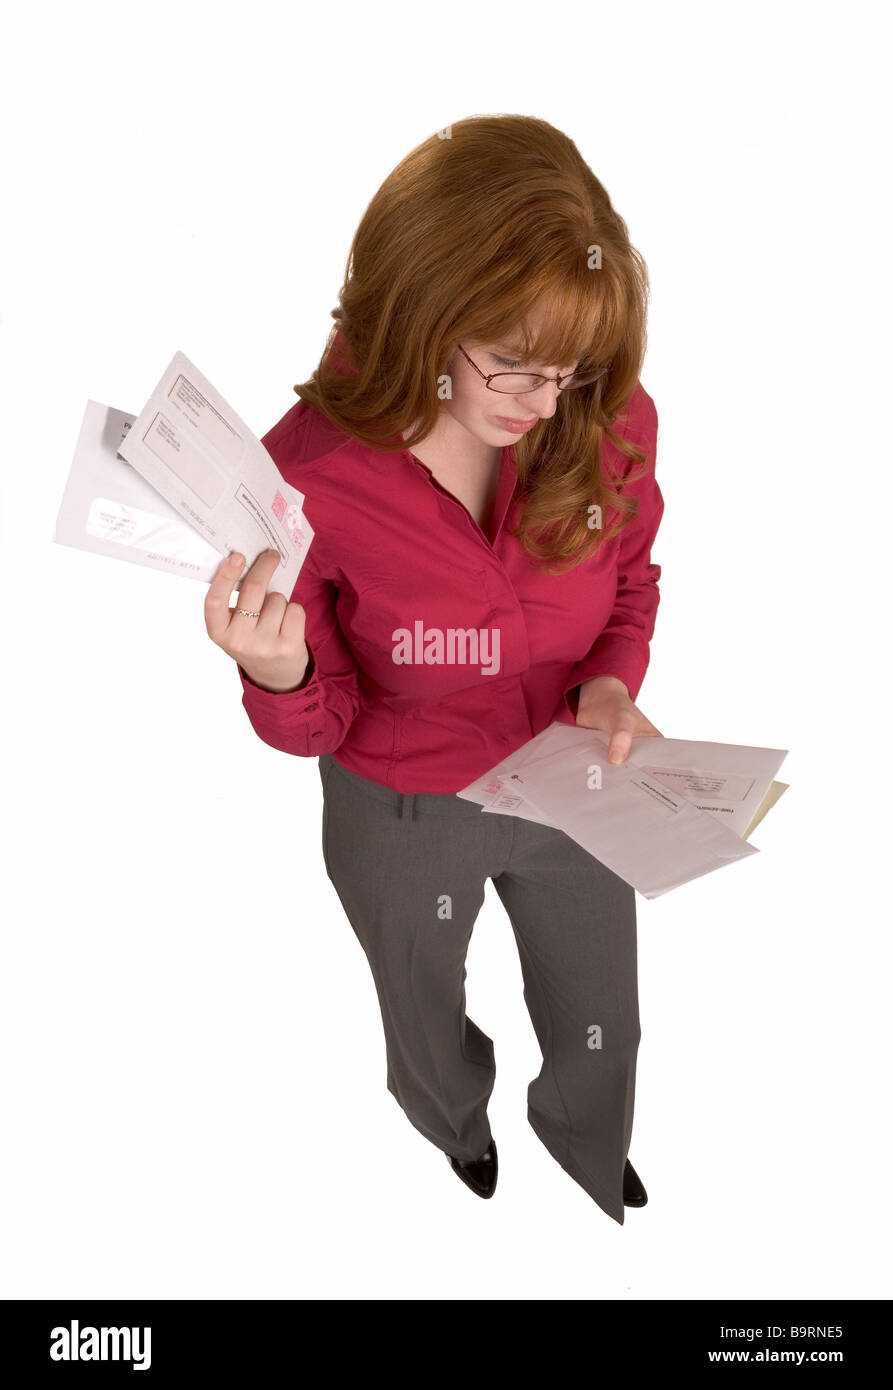 A woman holds many bills or letters that have just arrived in the mail - Stock Image